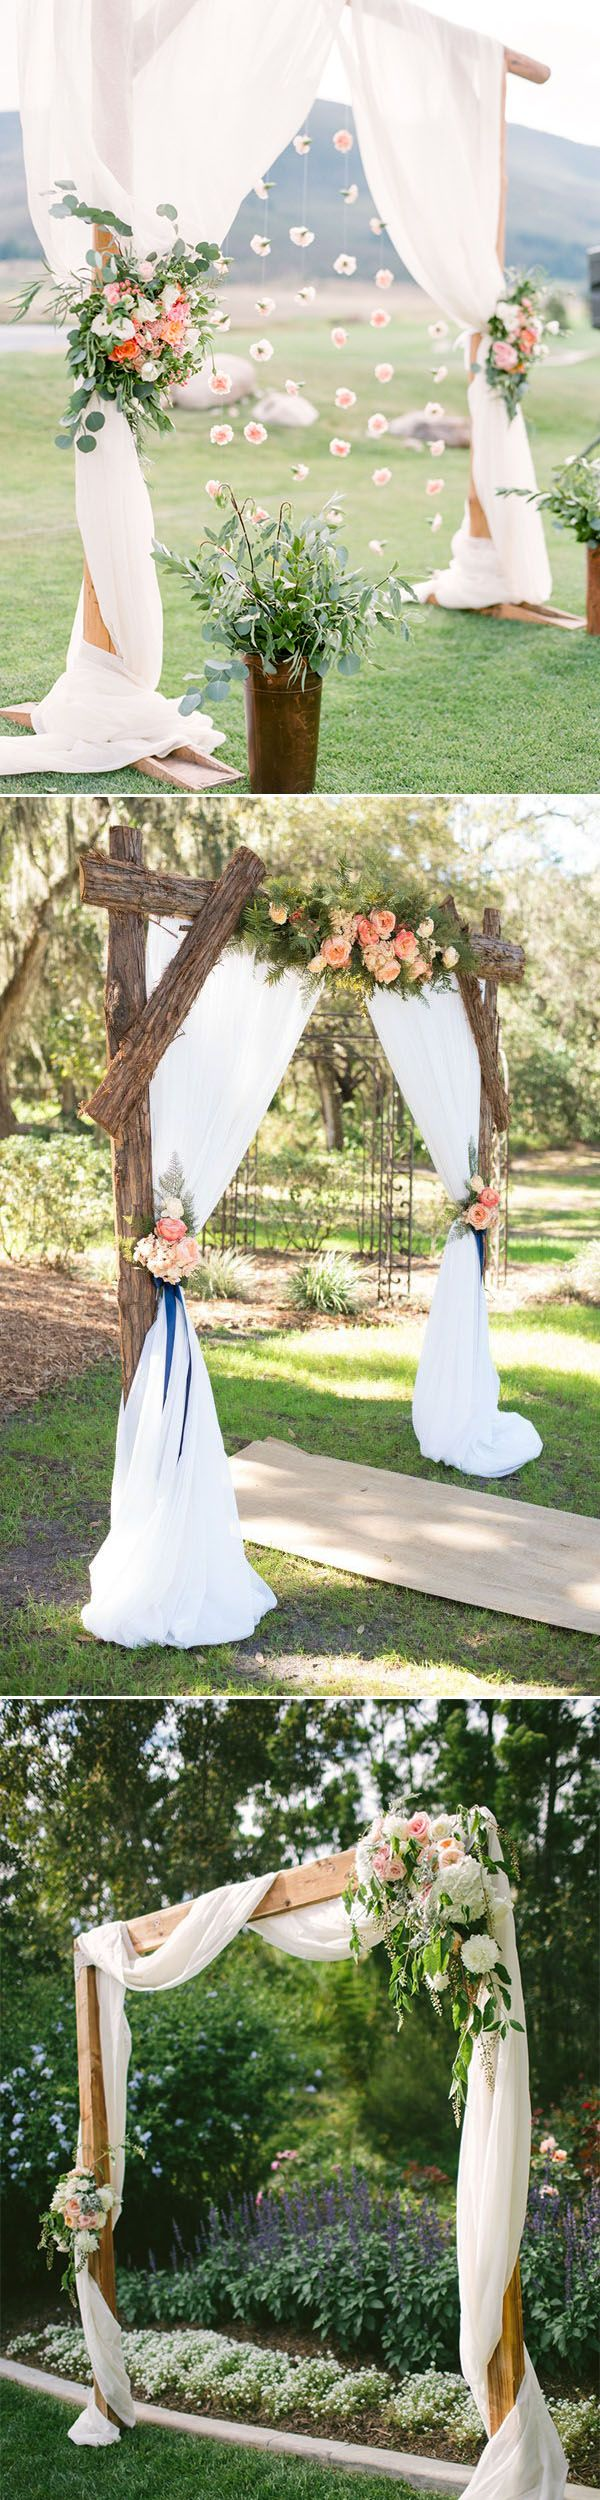 Best Floral Wedding Altars u Arches Decorating Ideas  Wedding